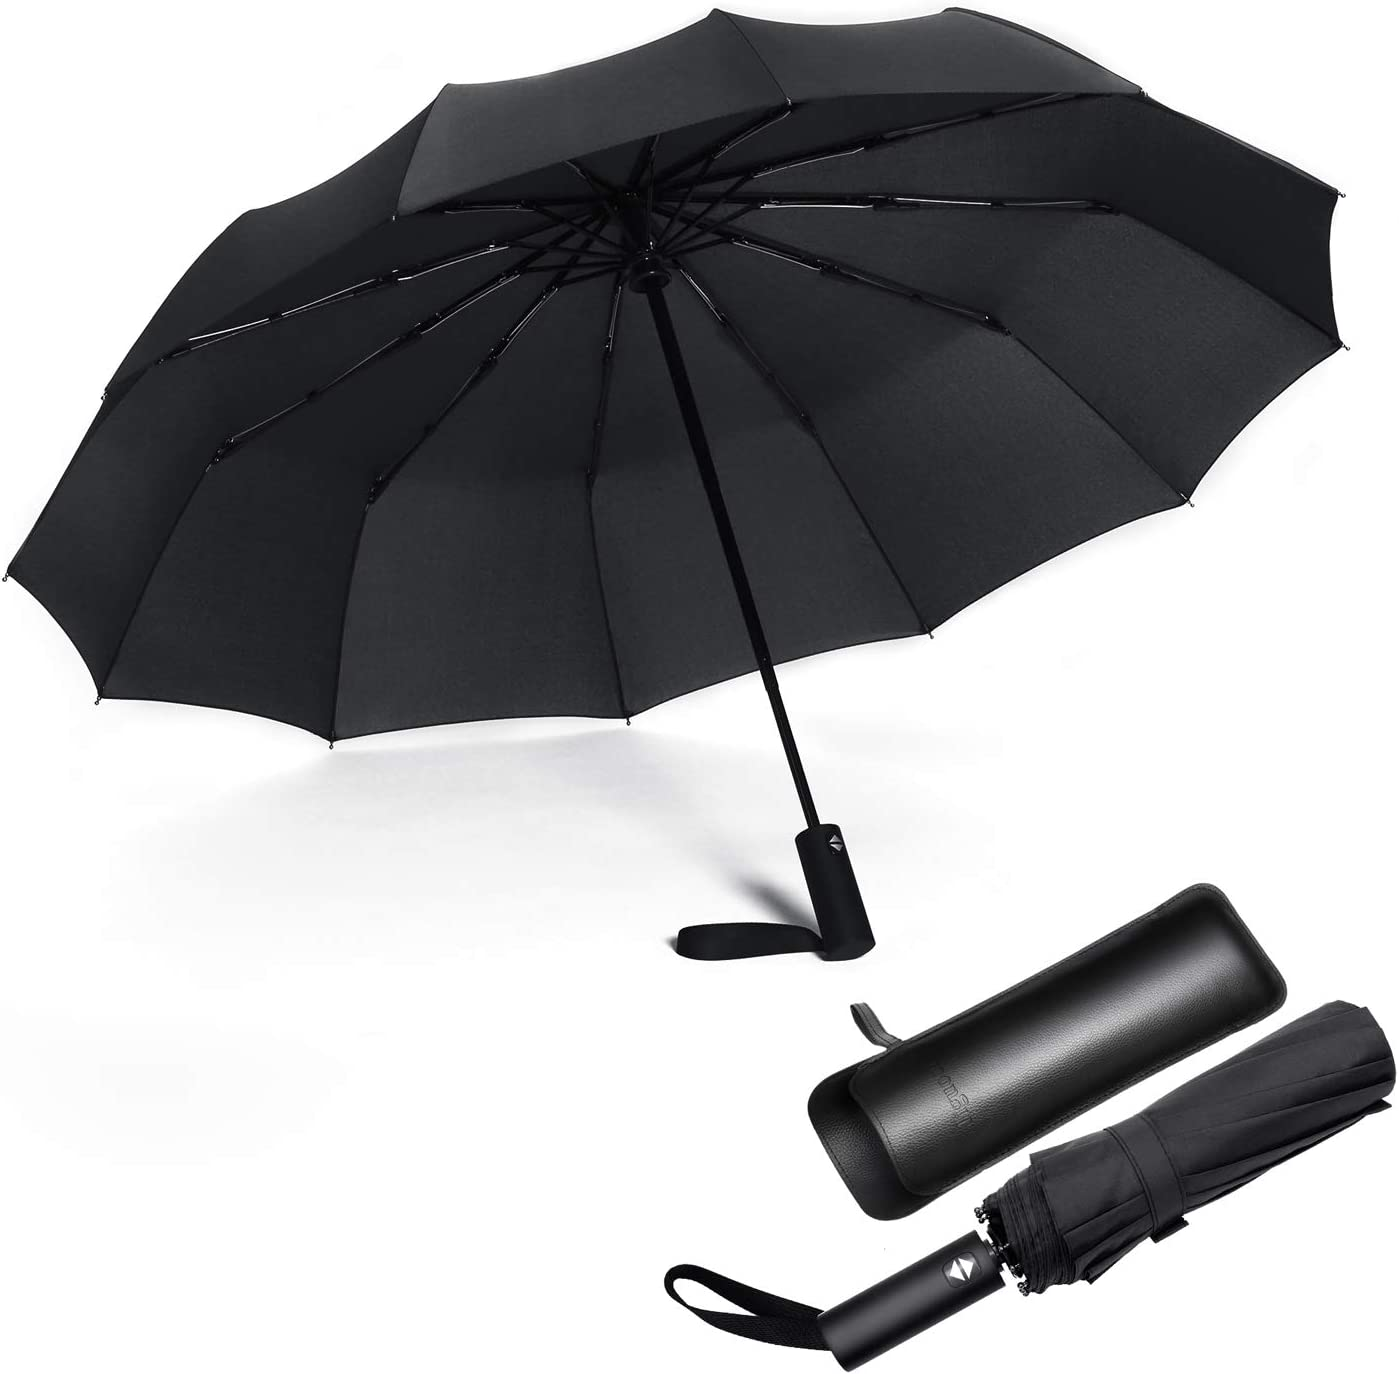 Black Large Windproof Umbrella Folds Into Portable Travel Size 54 Inch Canopy Big Enough To Fit In 2 Adults Auto Open Close and Patented Vortex System For Superior Safety And Durability